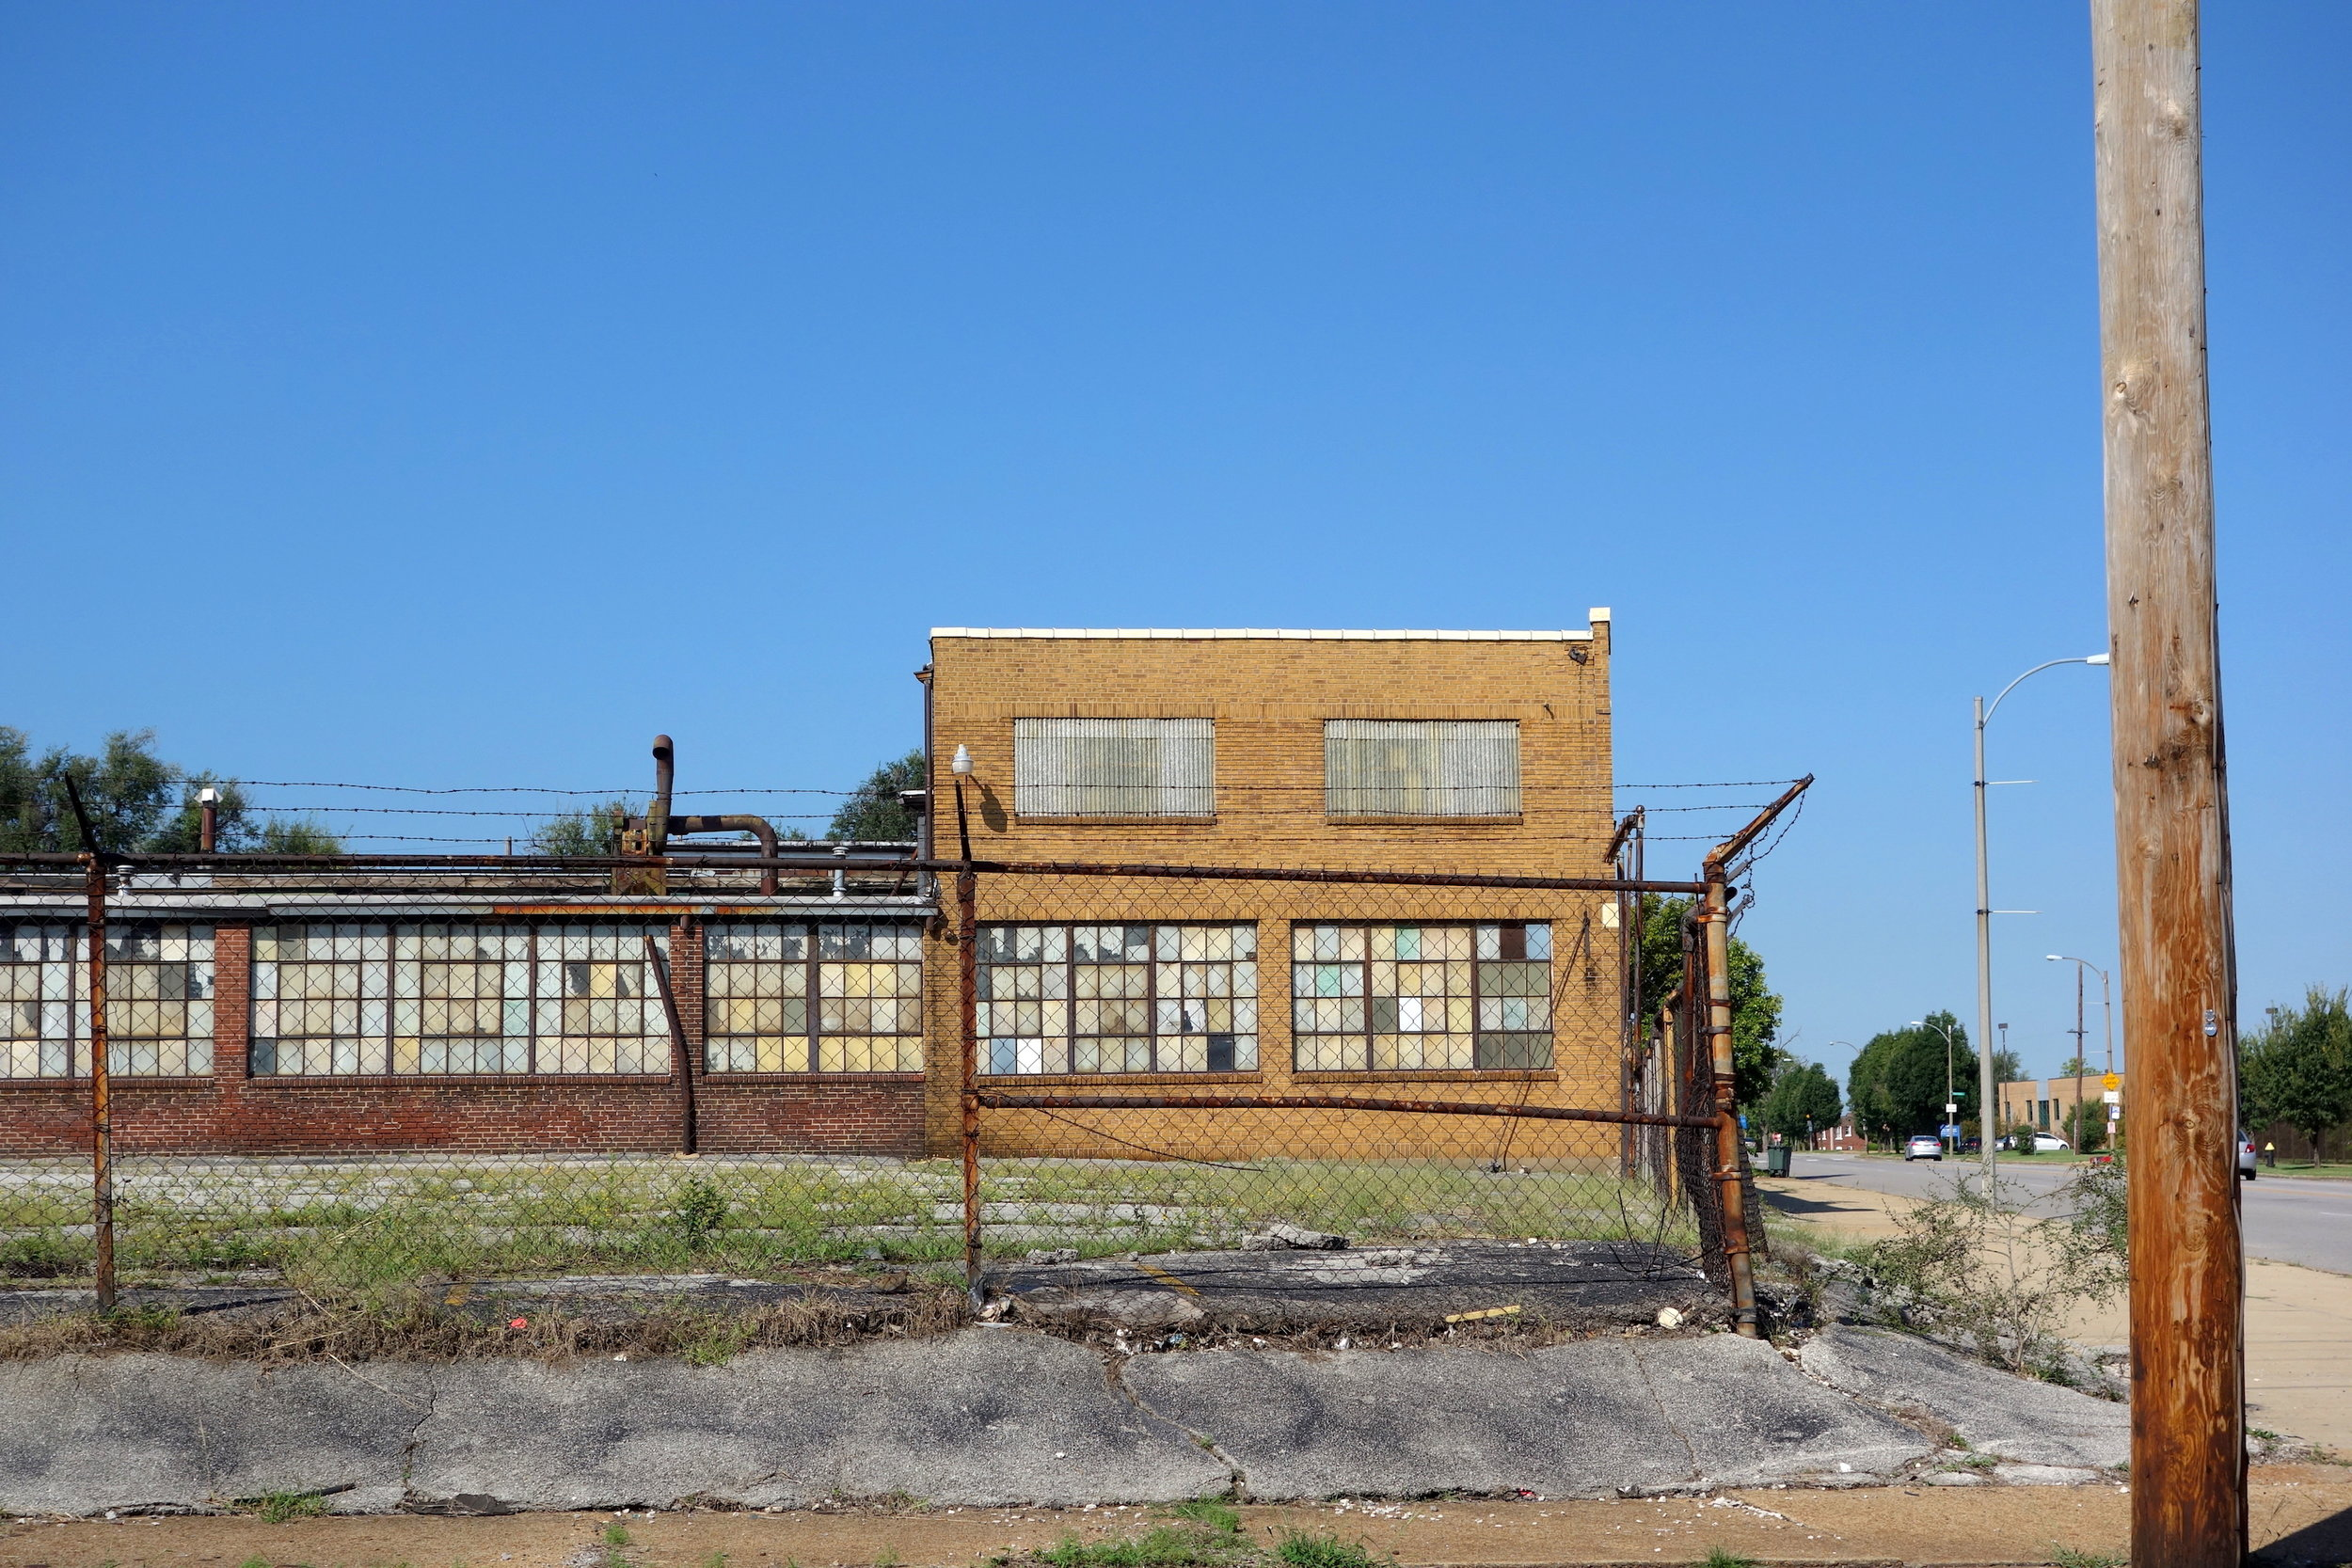 Figure 7. Western Supplies, Inc., now abandoned at Glasgow and Cass Avenues, St. Louis, 2016. Photograph by Joseph Heathcott.